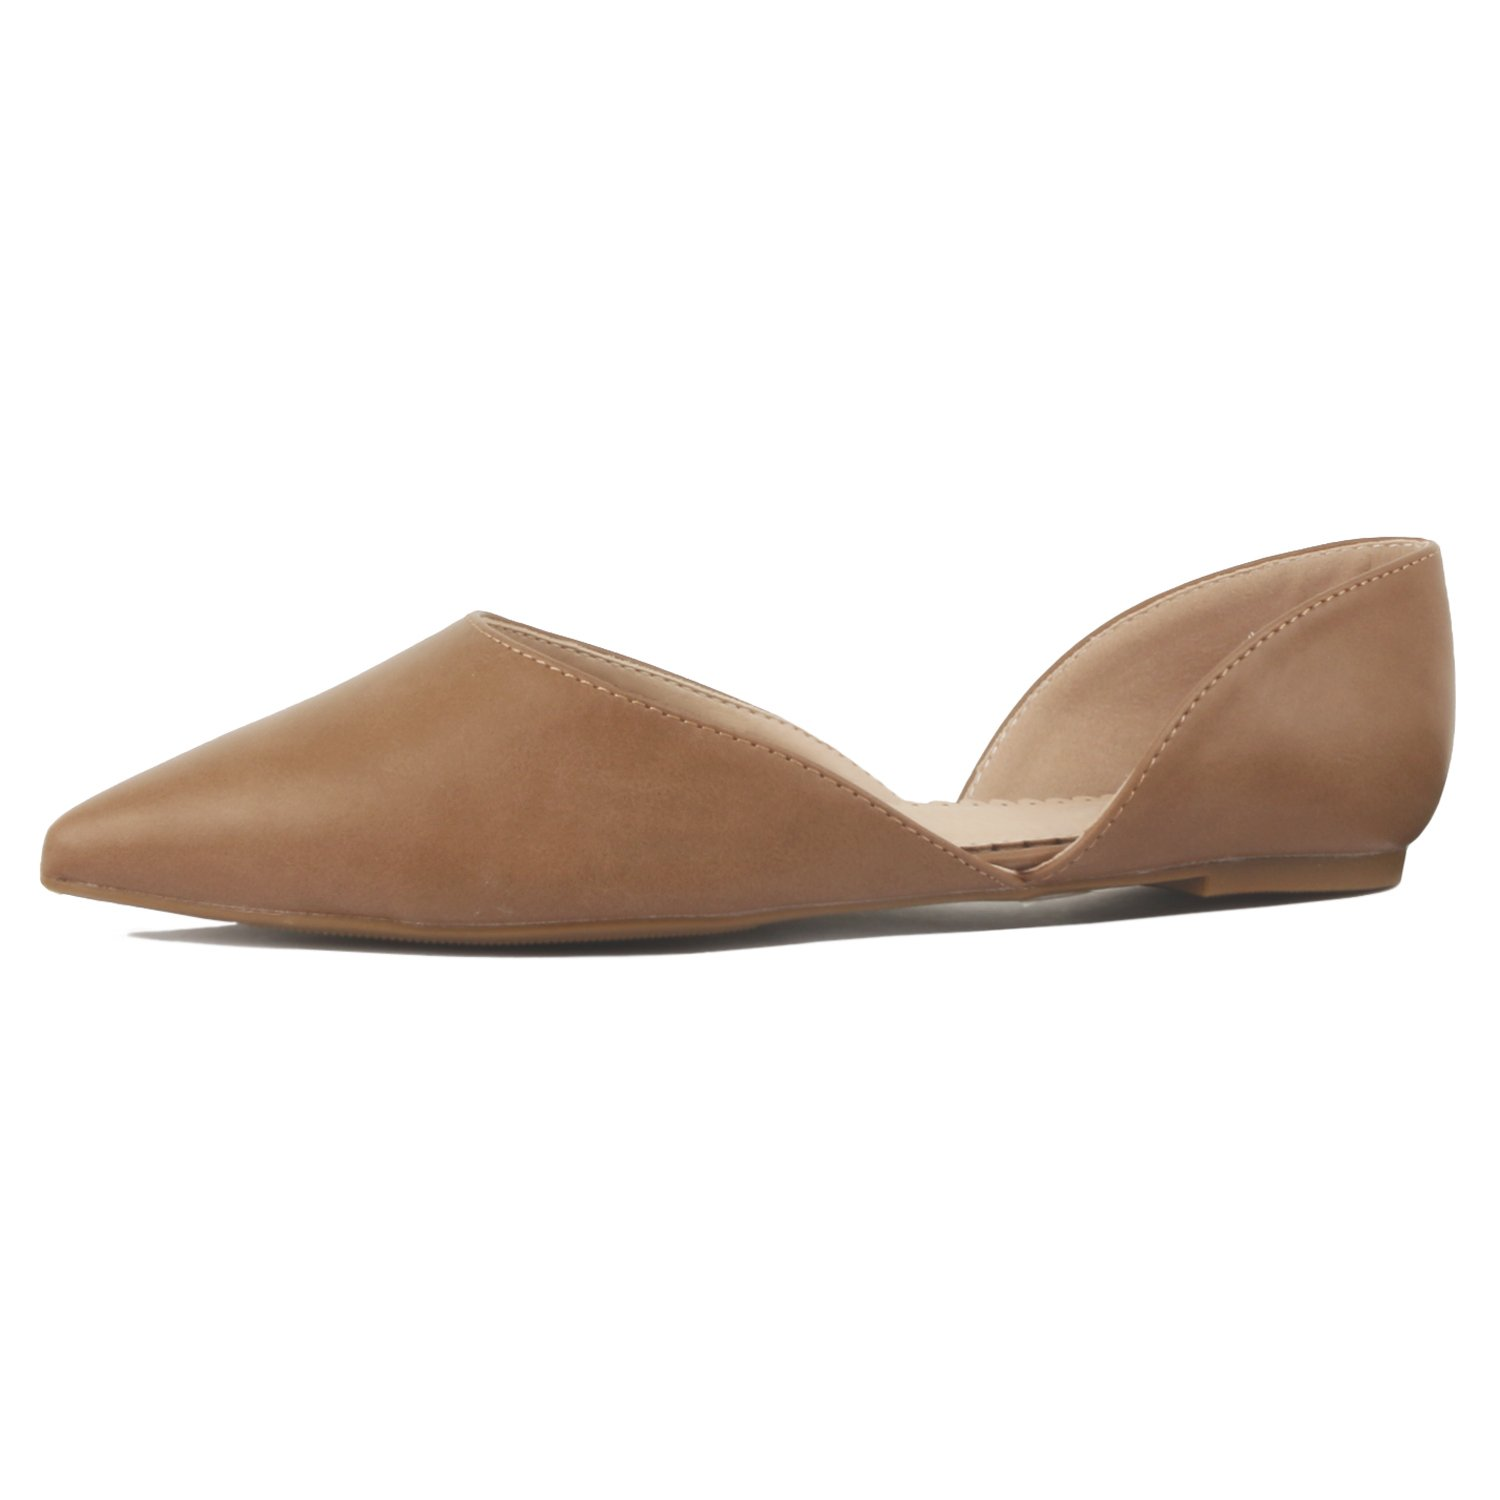 01 Mocha Pu Guilty Heart Womens D'Orsay Almond Pointed Toe Slip On Casual Flats